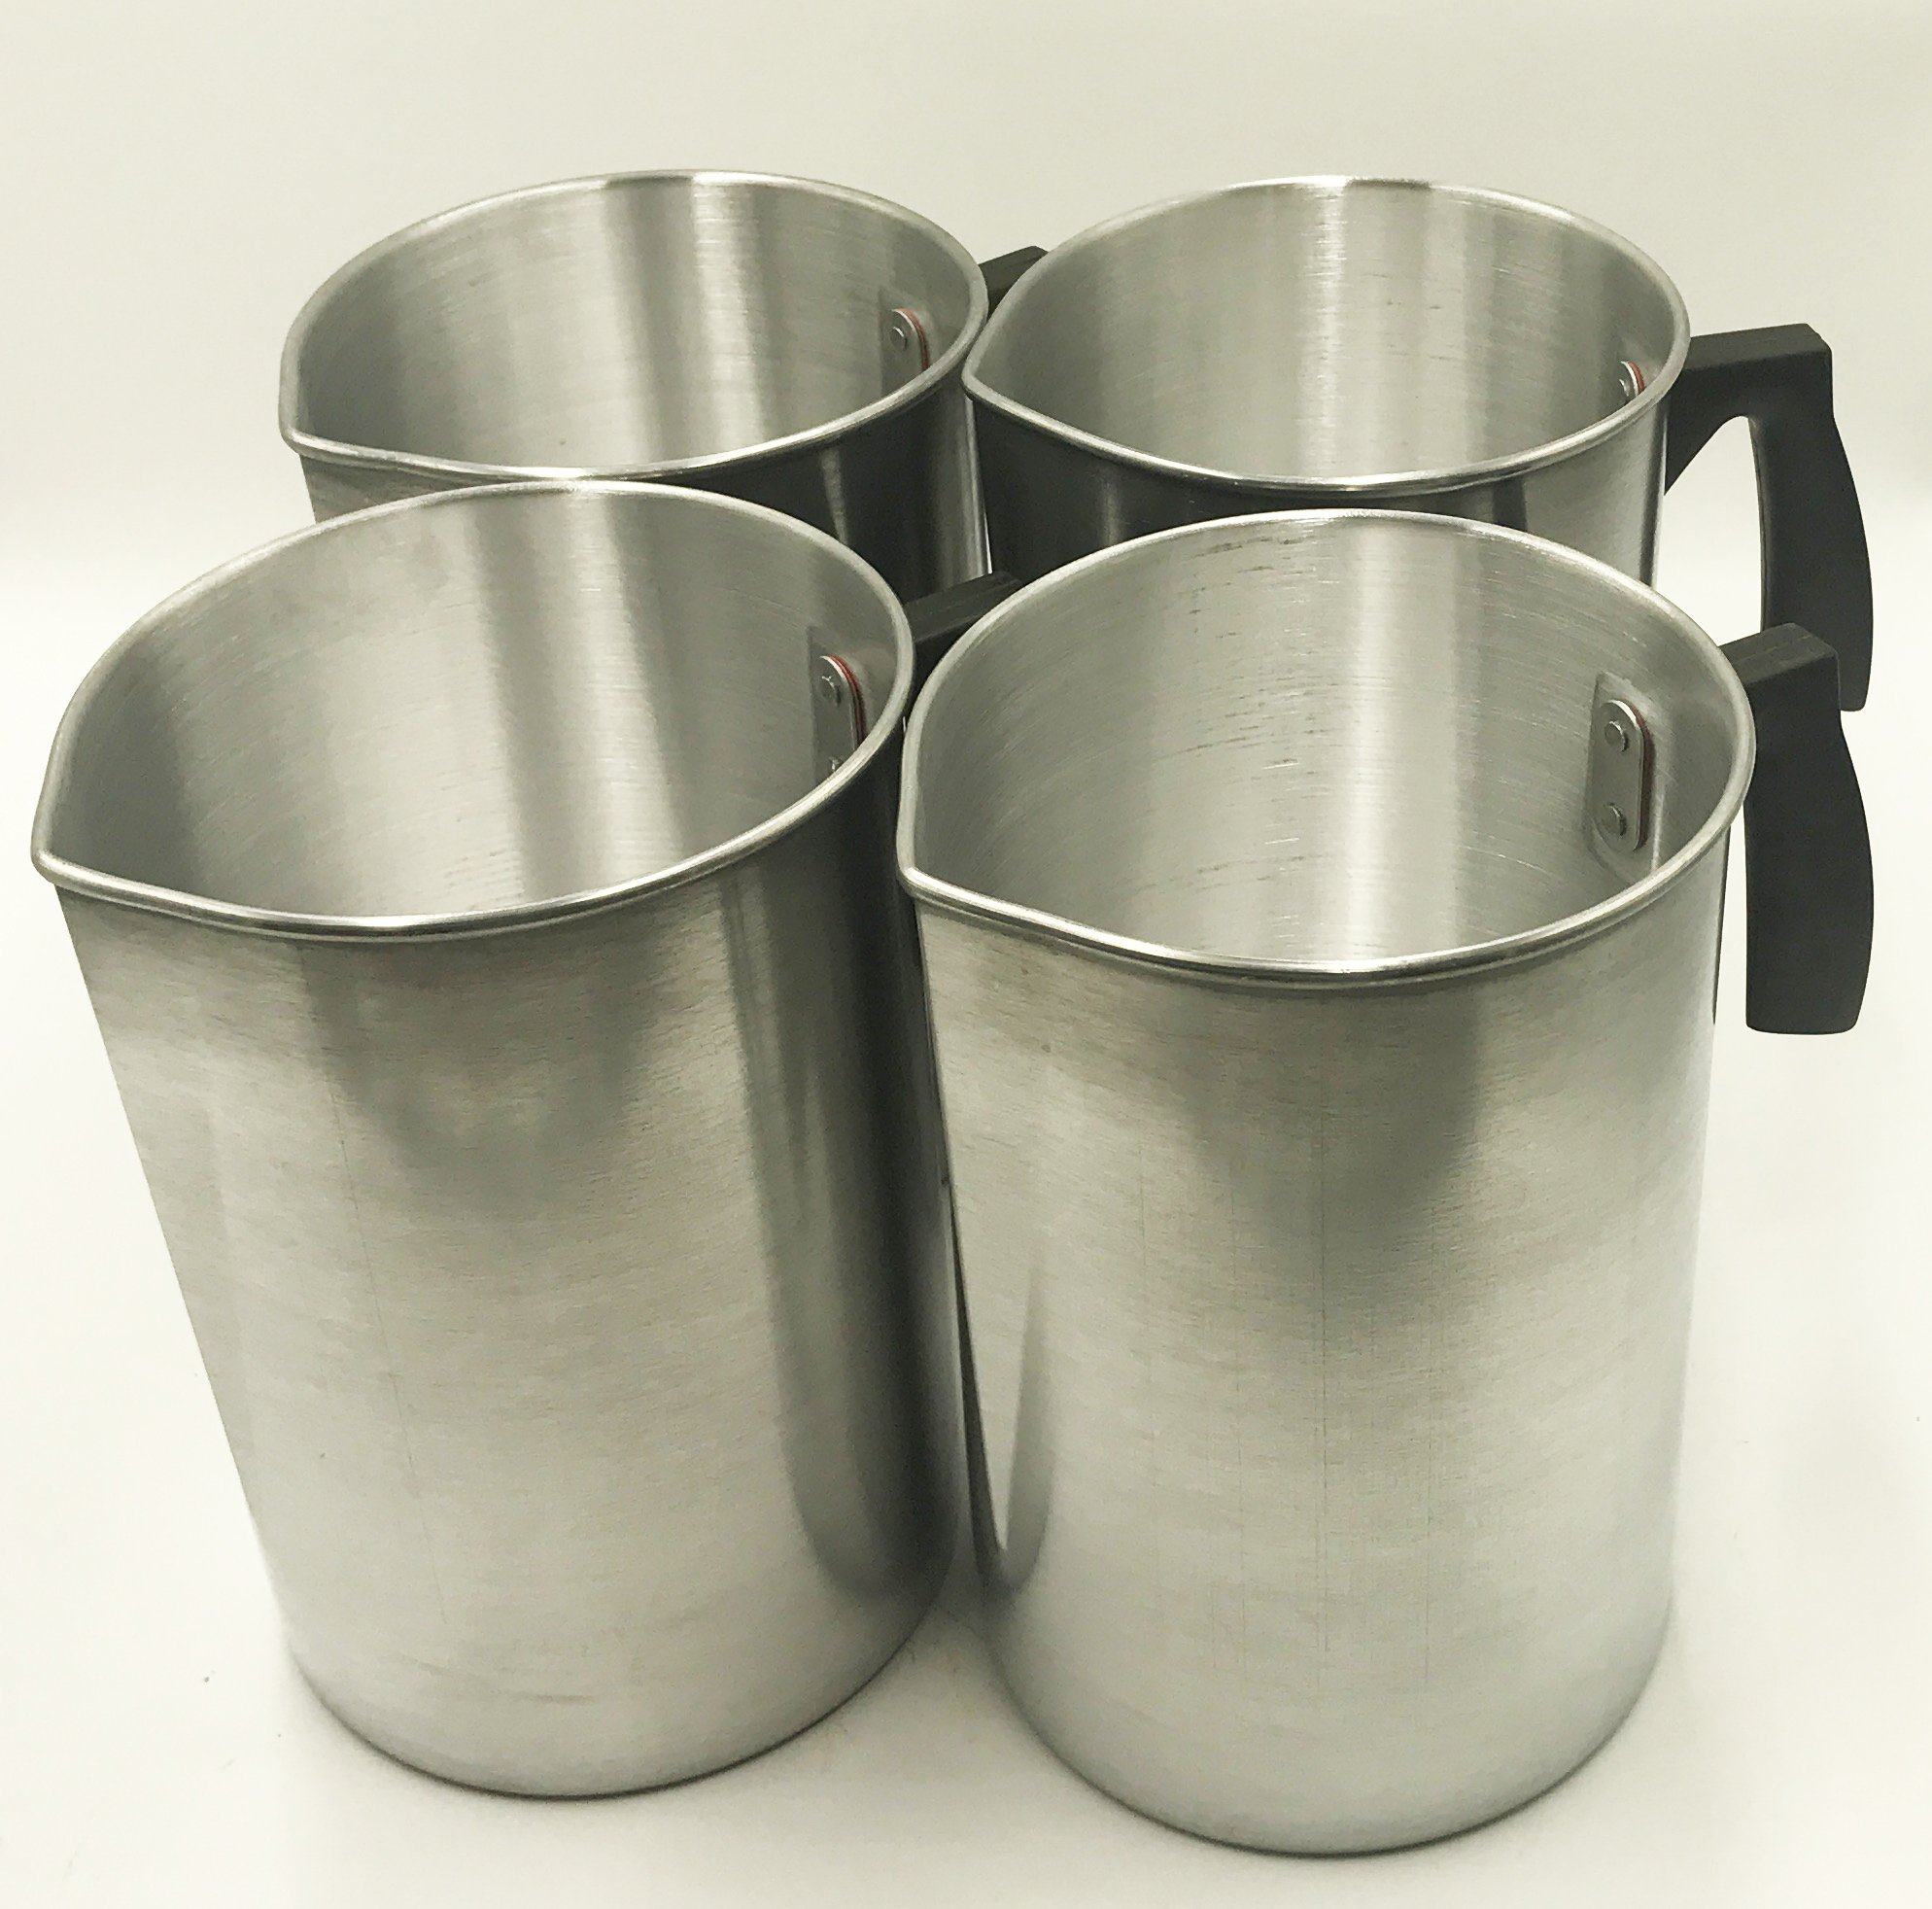 4pk of Pouring Pitchers by Candlewic